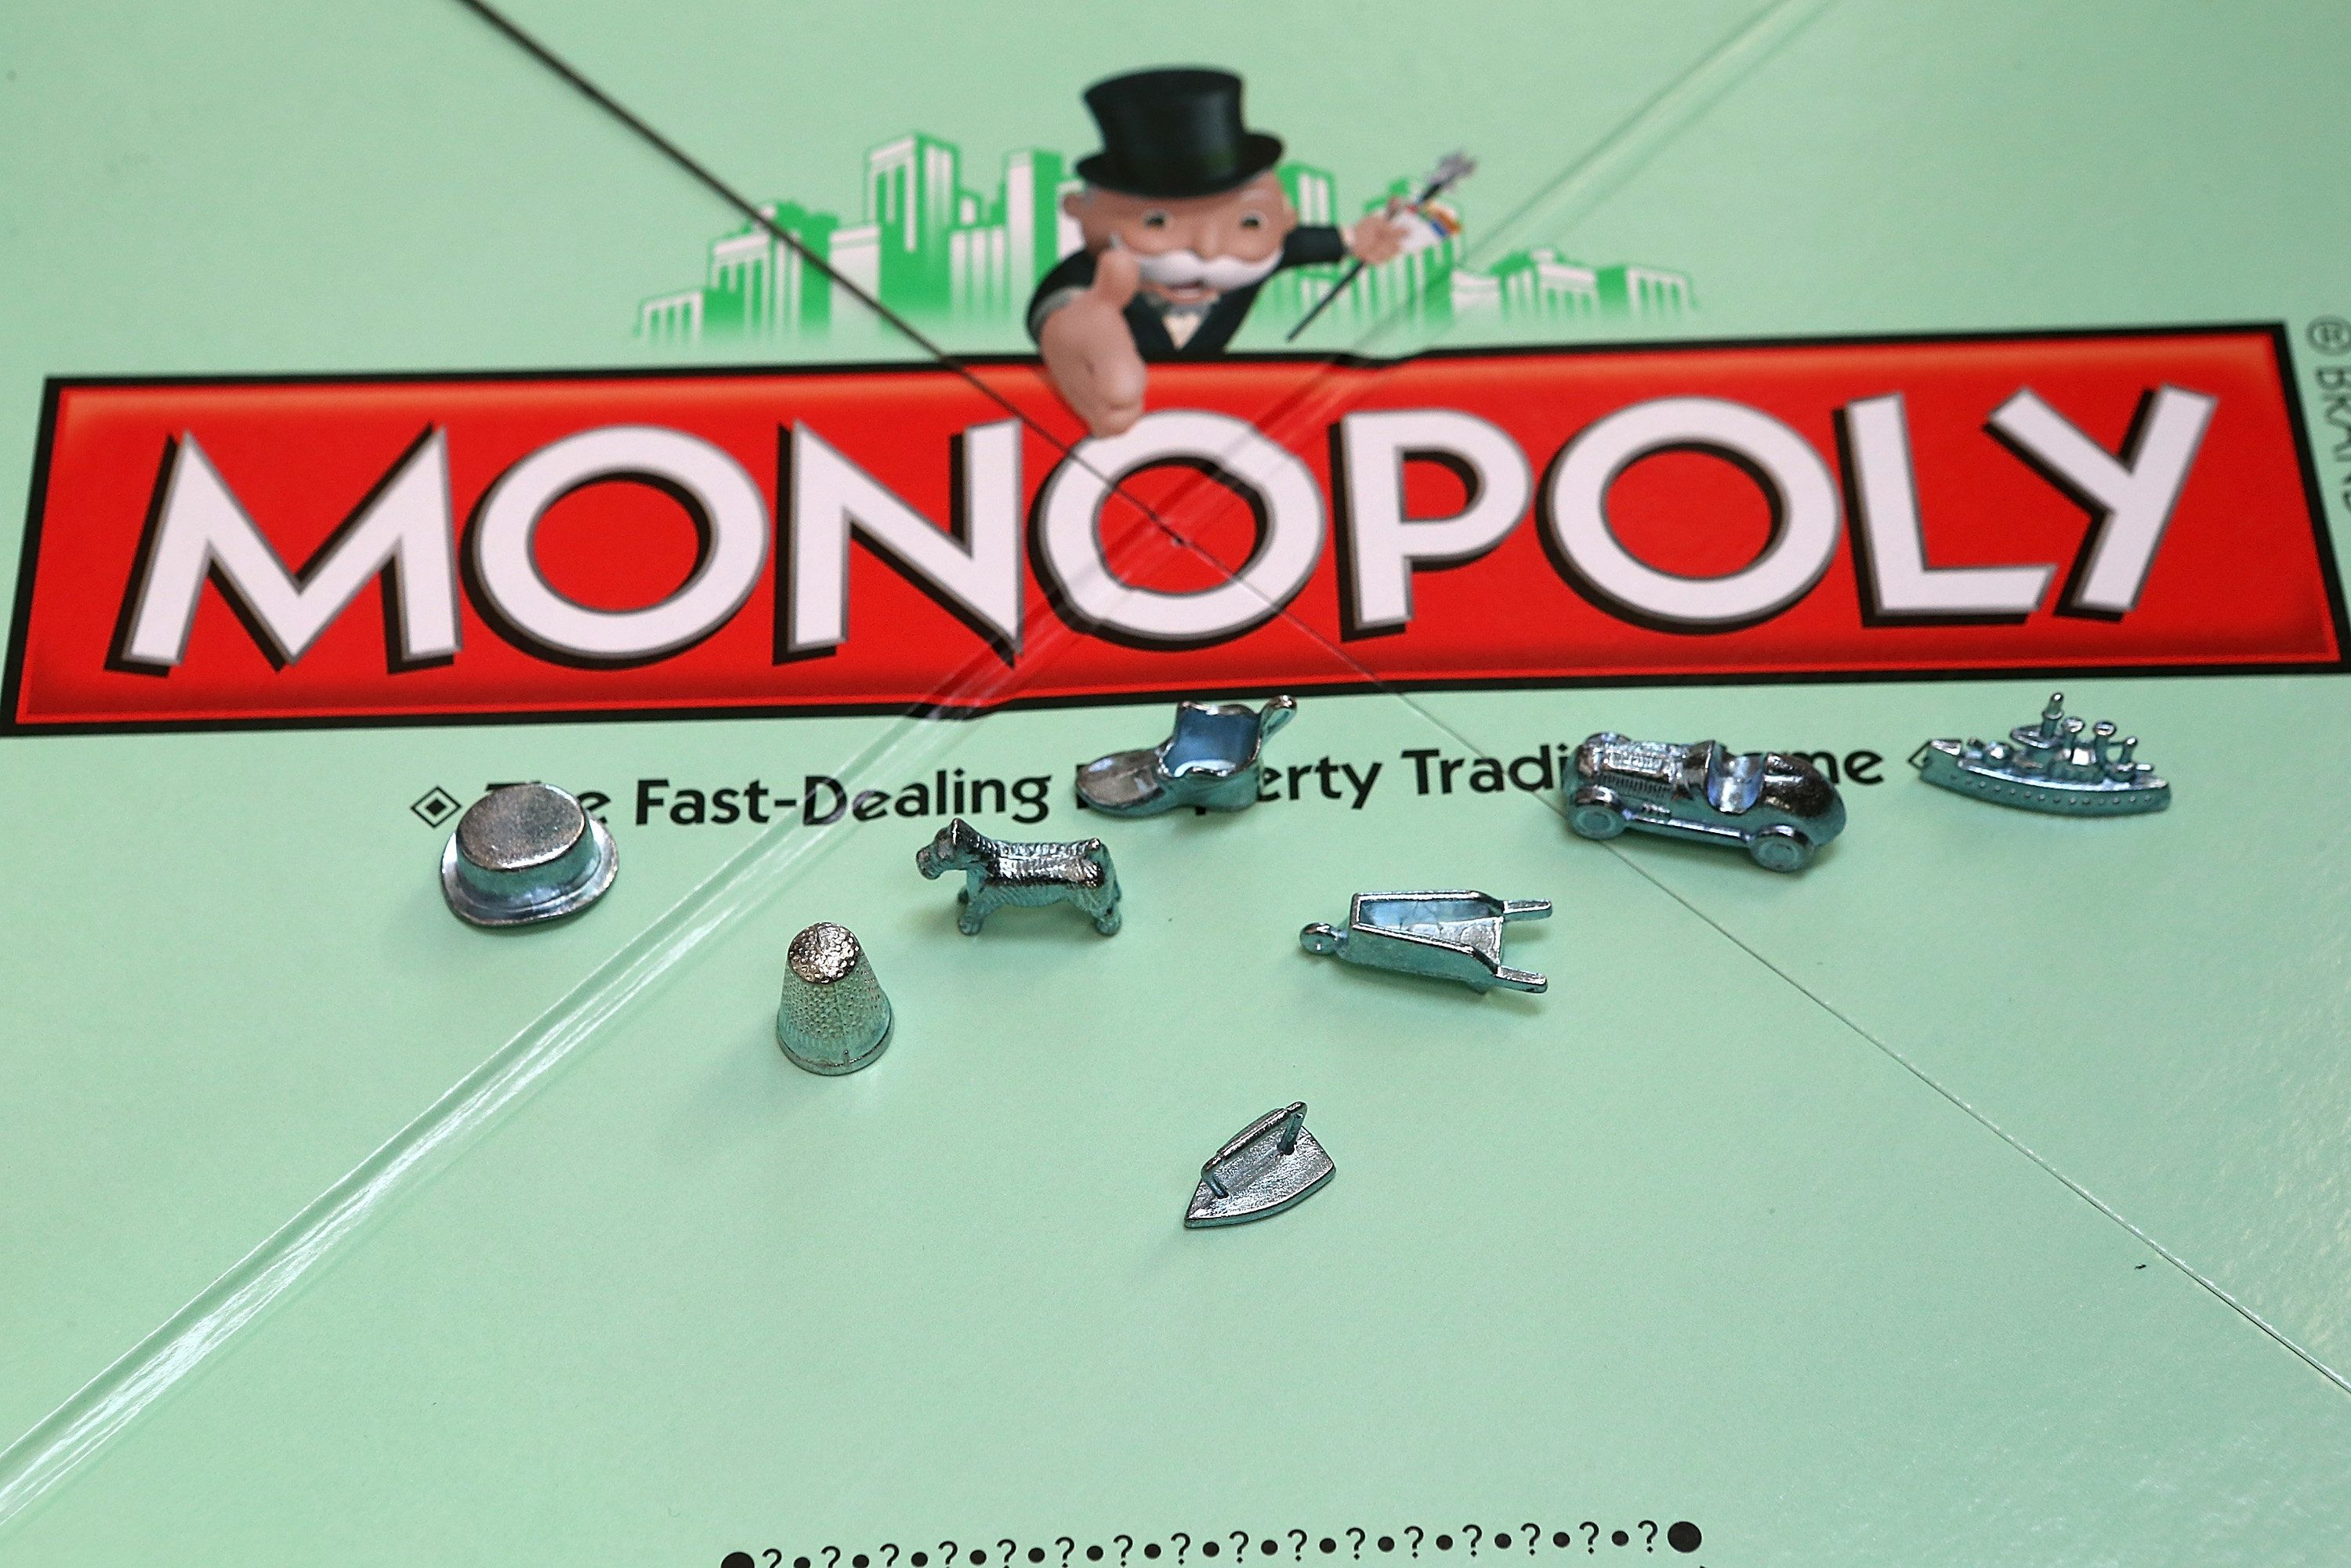 FAIRFAX, CA - FEBRUARY 06:  In this photo illustration, Monopoly game pieces are displayed on February 6, 2013 in Fairfax, California. Toy maker Hasbro, Inc. announced today that fans of the board game Monopoly voted in an online contest to eliminate the iron playing figure and replace it with a cat figure. The cat game piece received 31 percent of the online votes to beat out four other contenders, a robot, diamond ring, helicopter and guitar.  (Photo illustration by Justin Sullivan/Getty Images)